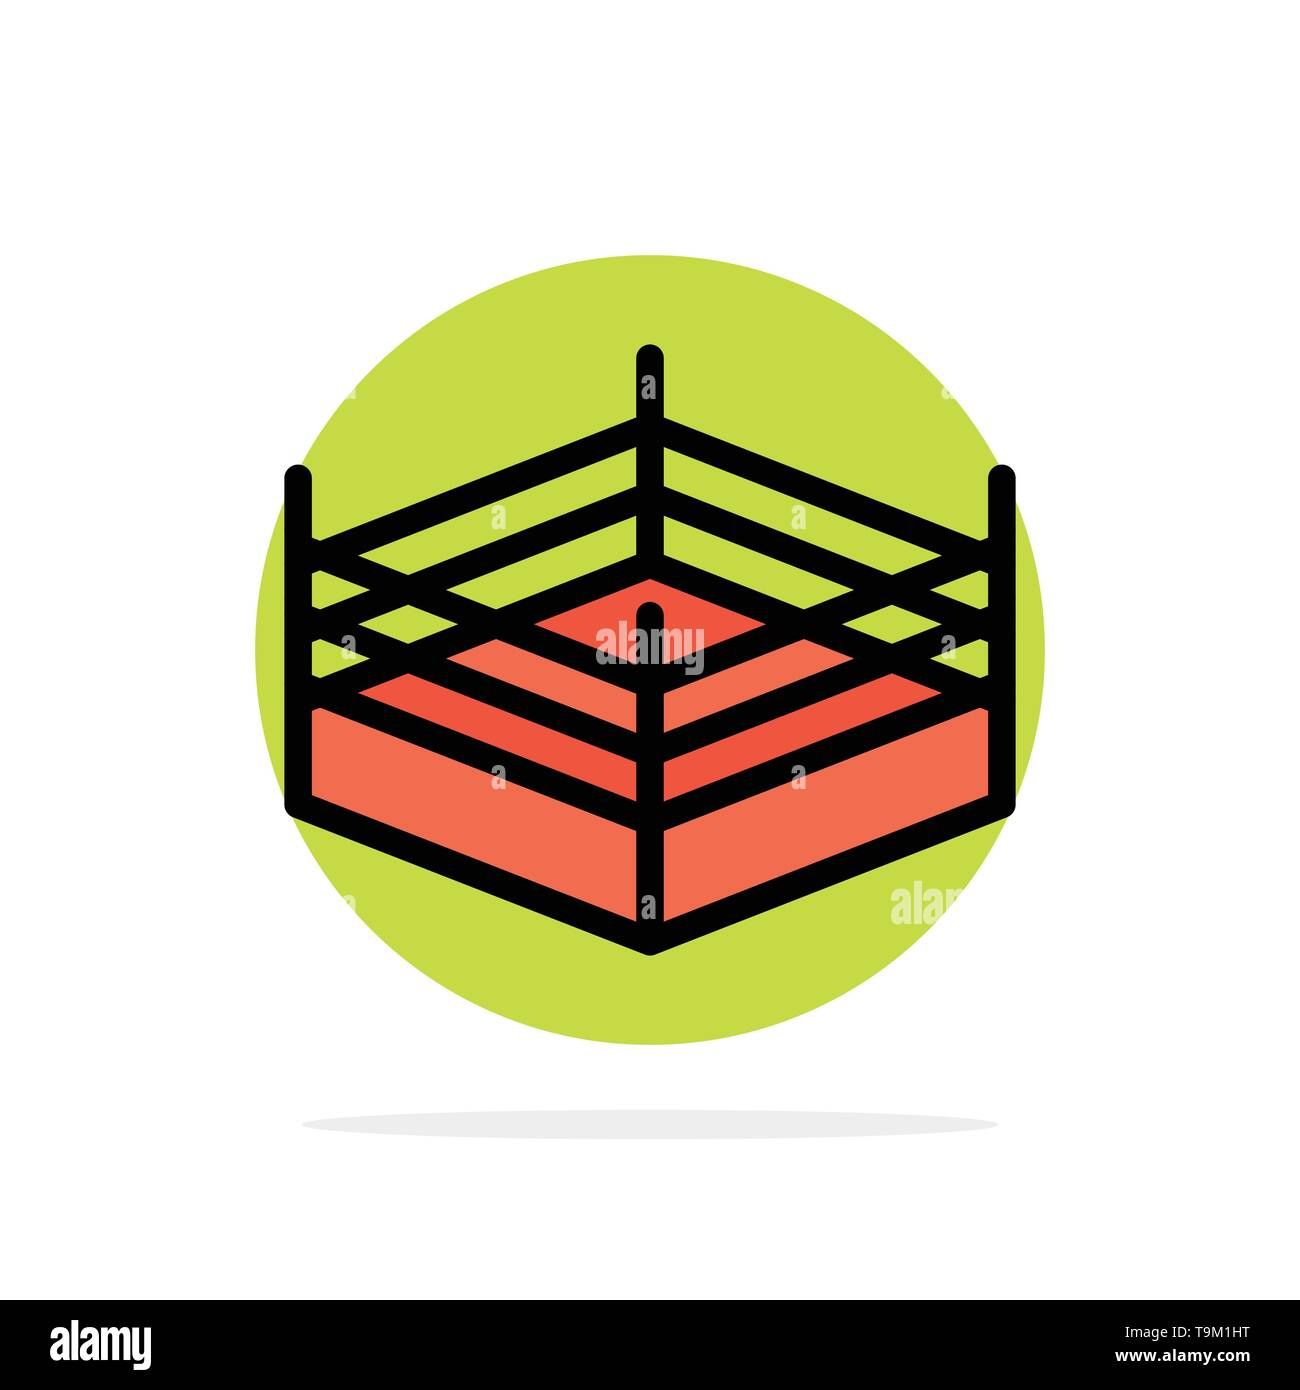 Boxing, Ring, Wrestling Abstract Circle Background Flat color Icon Stock Vector